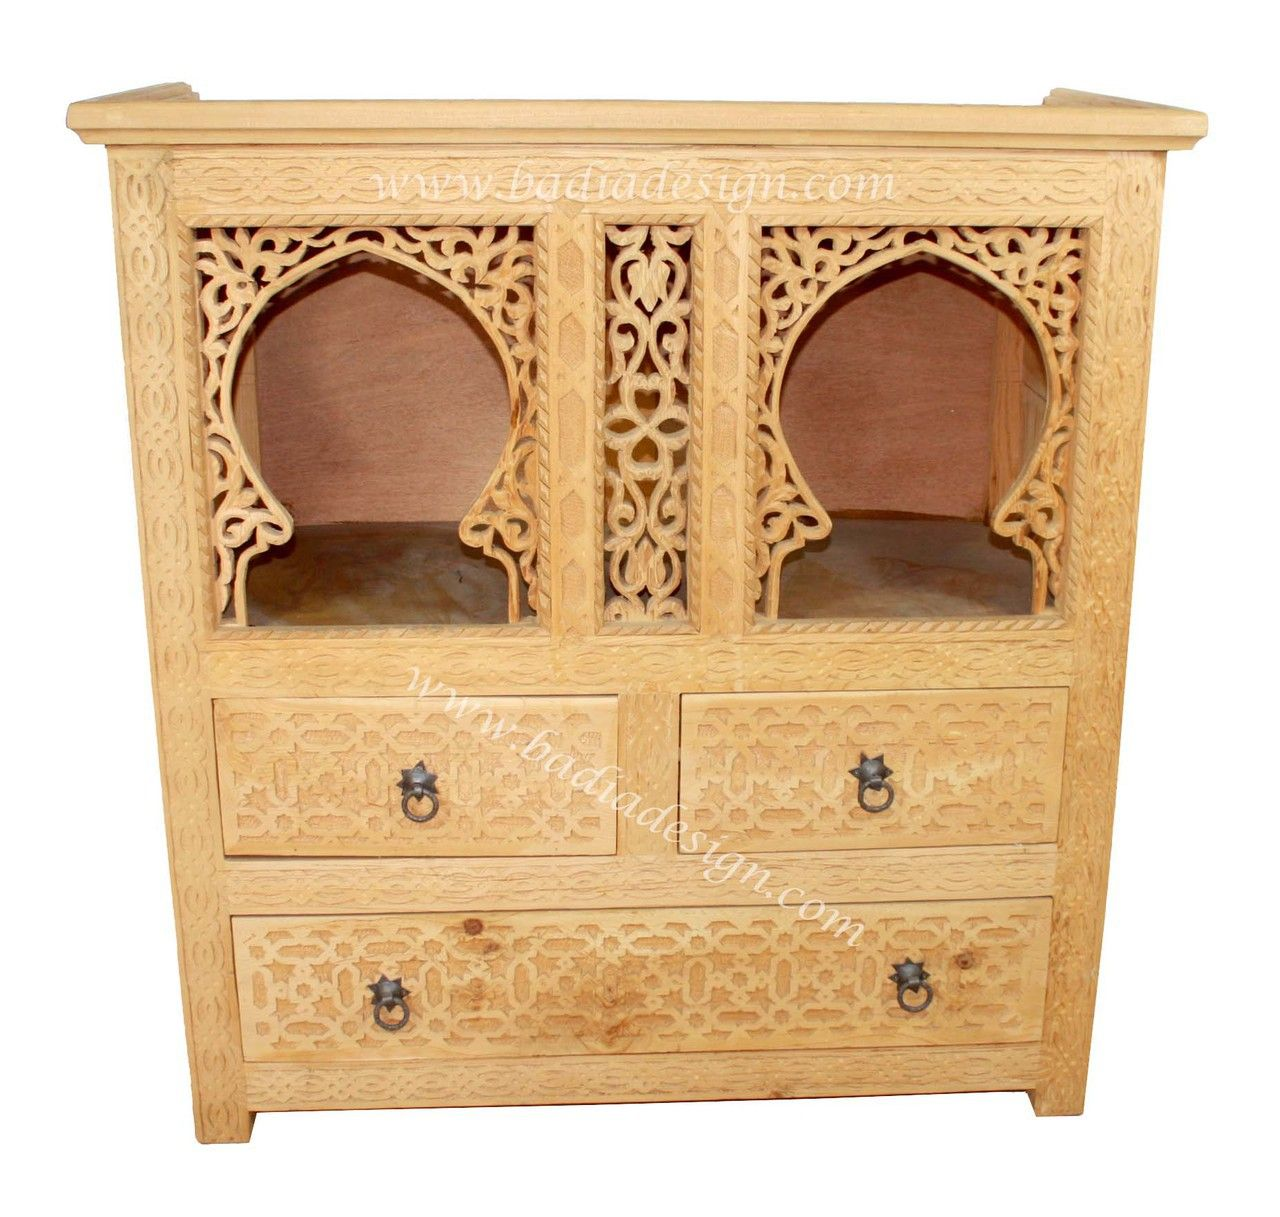 Moroccan Hand Carved Wooden Cabinet   CW CA016, (http://www